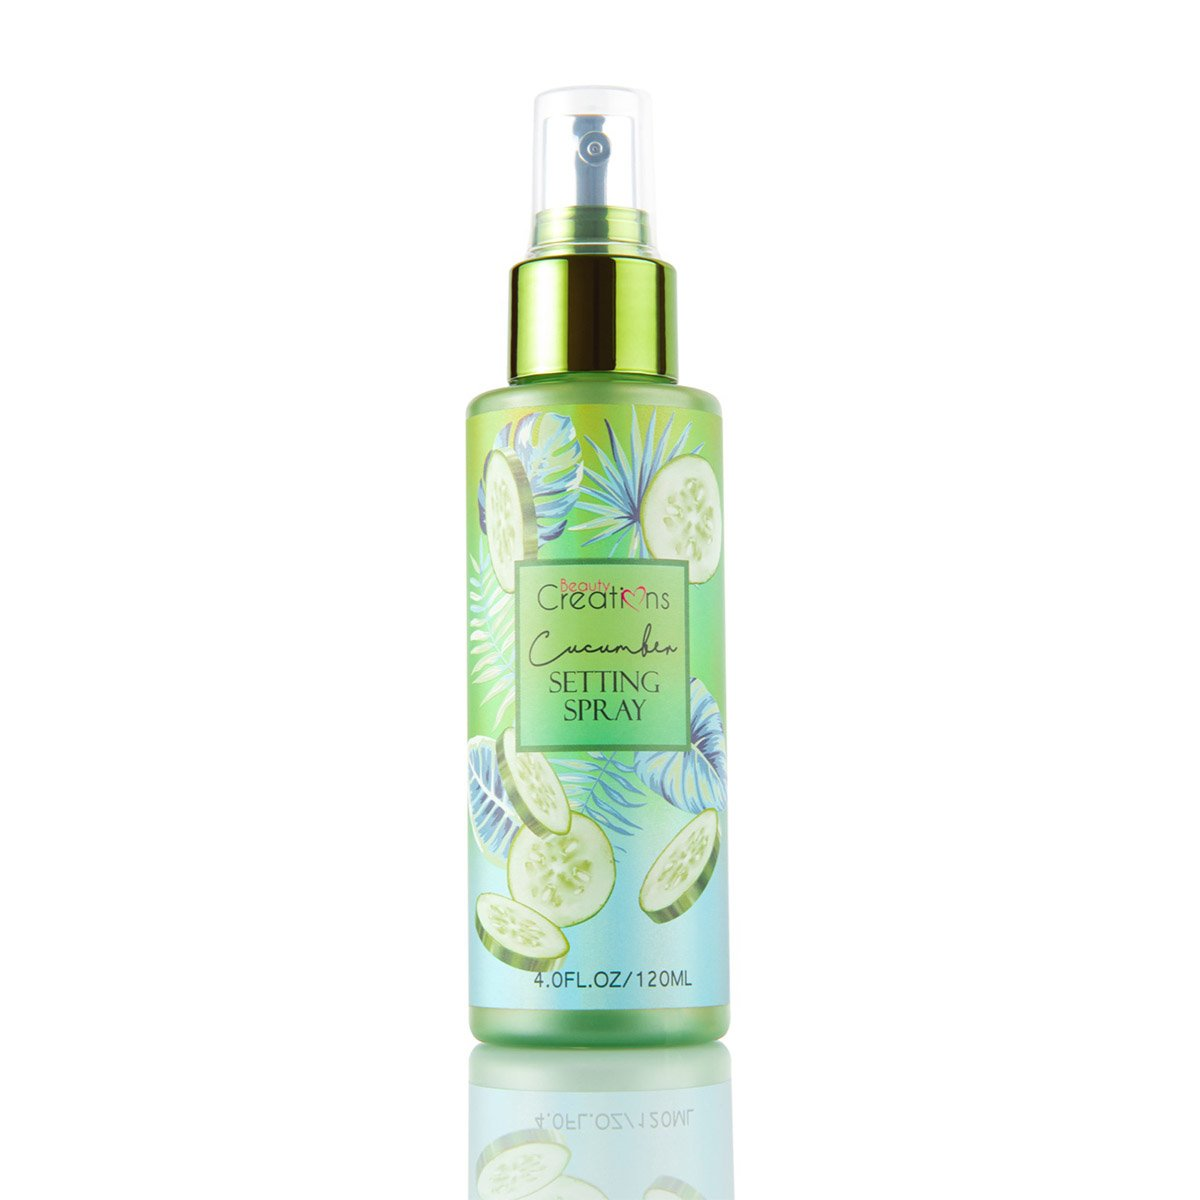 CUCUMBER SETTING SPRAY - BEAUTY CREATIONS